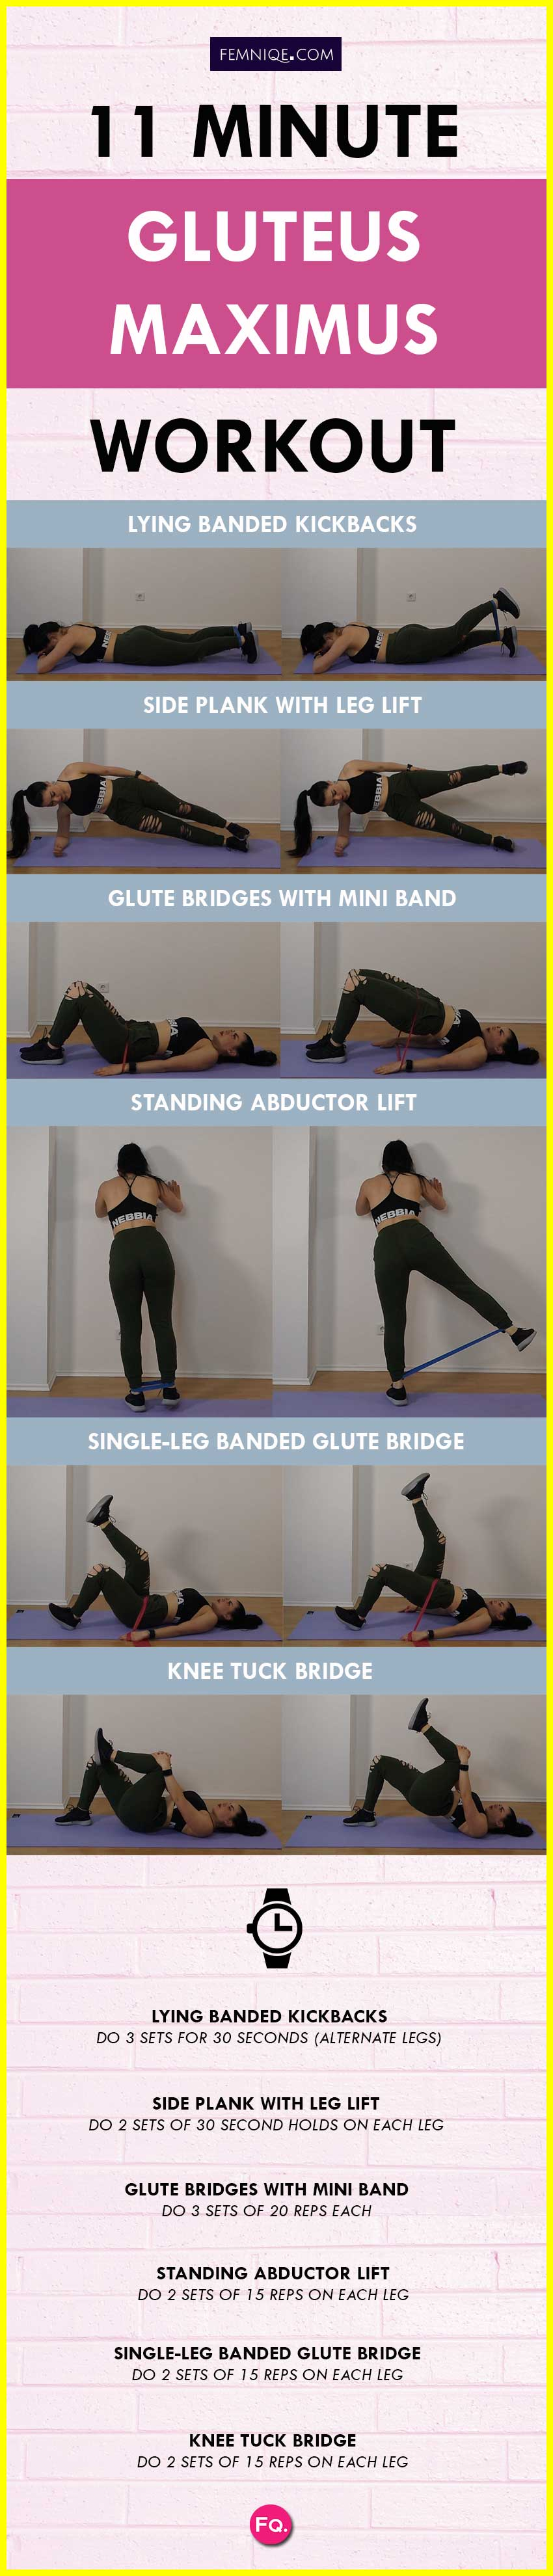 gluteus maximus exercises strengthening